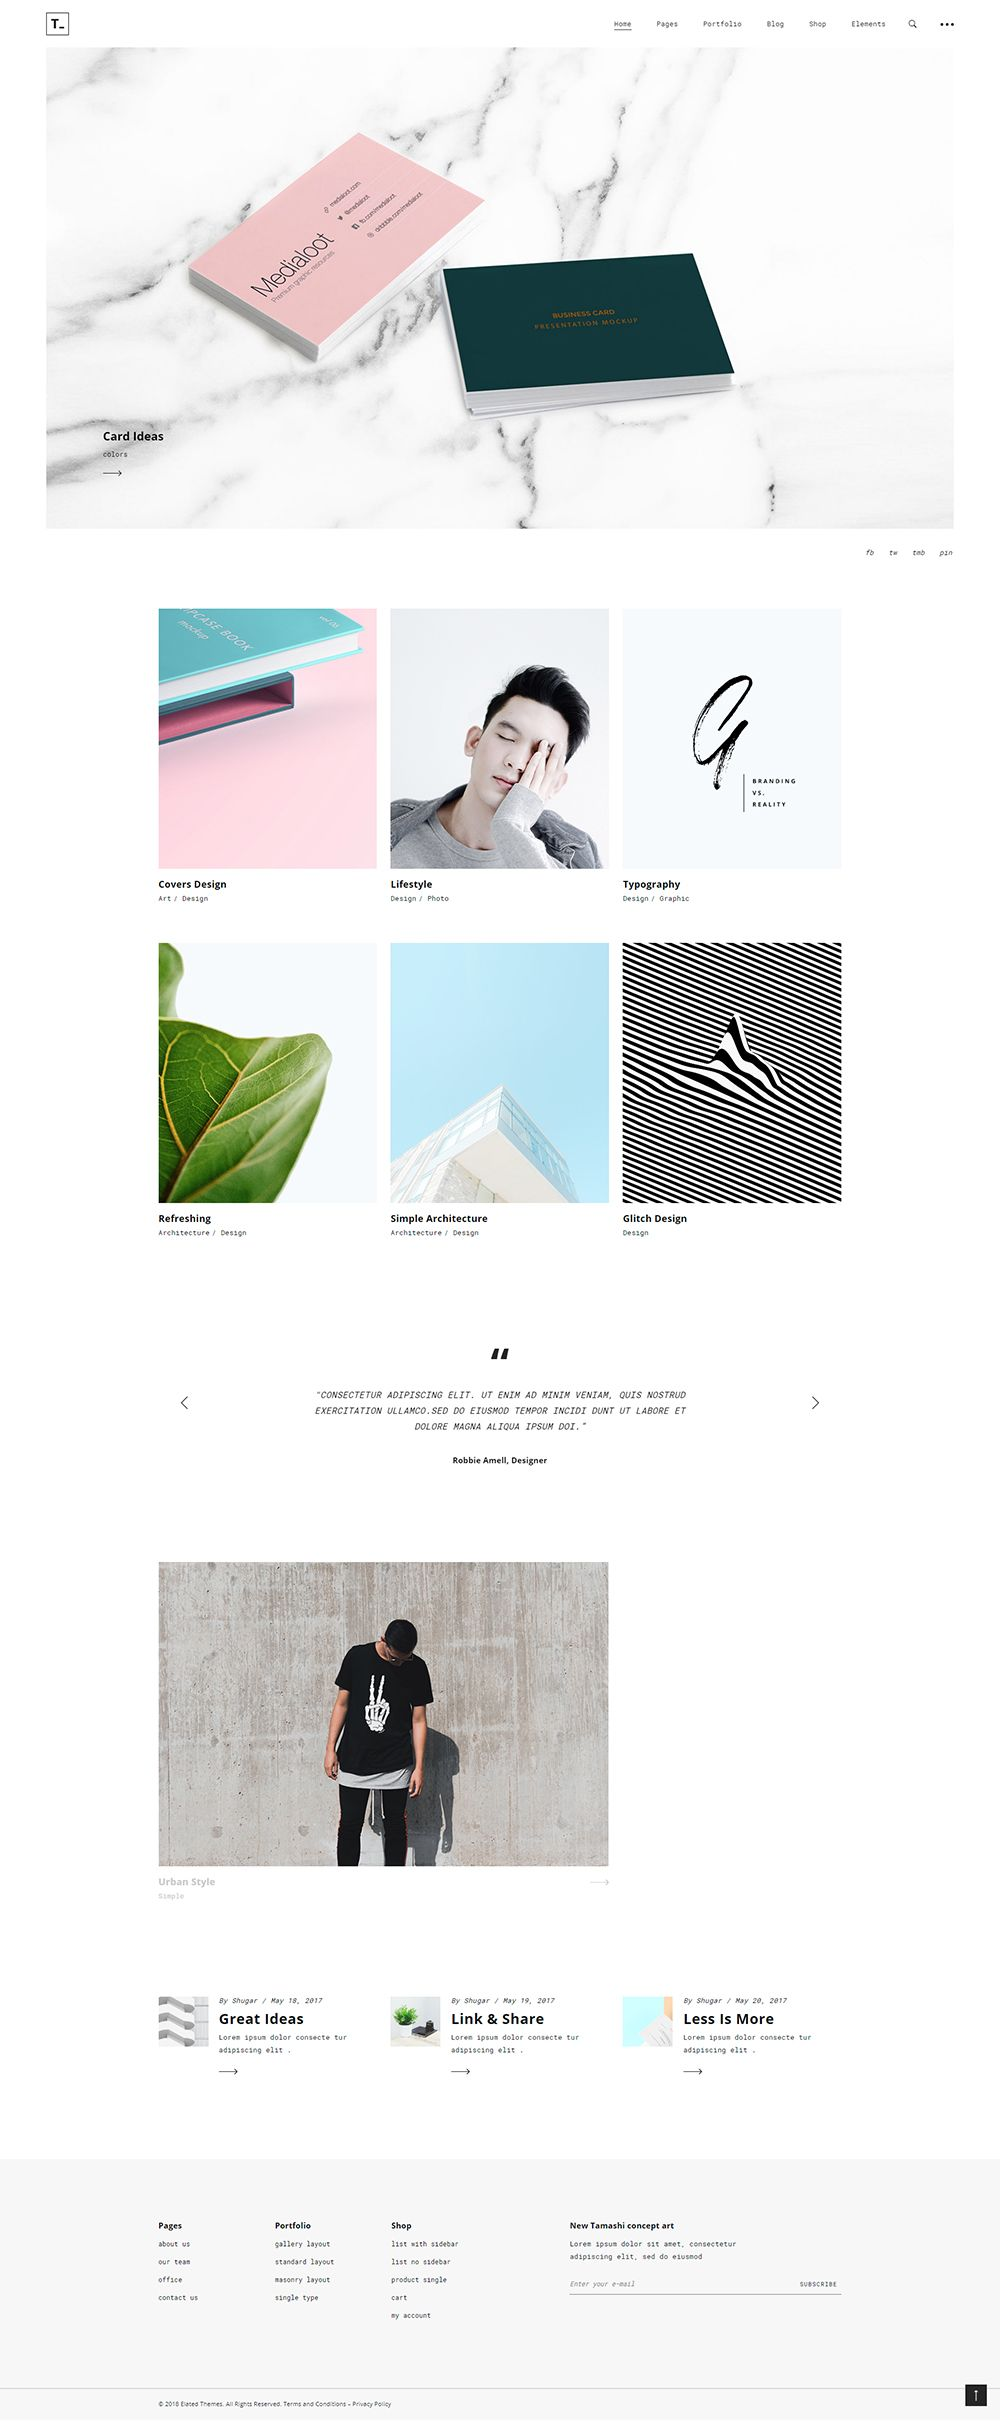 Made by creatives for creatives, Tamashi WordPress theme has it all to showcase your work in a stunning manner. #wordpress #webdesign #wordpresslove #webdesigninspiration #design #layout #branding #designideas #responsive #uxdesign #uidesign #pastel #pastelmood #creative #colormood #pastelcolorpalette